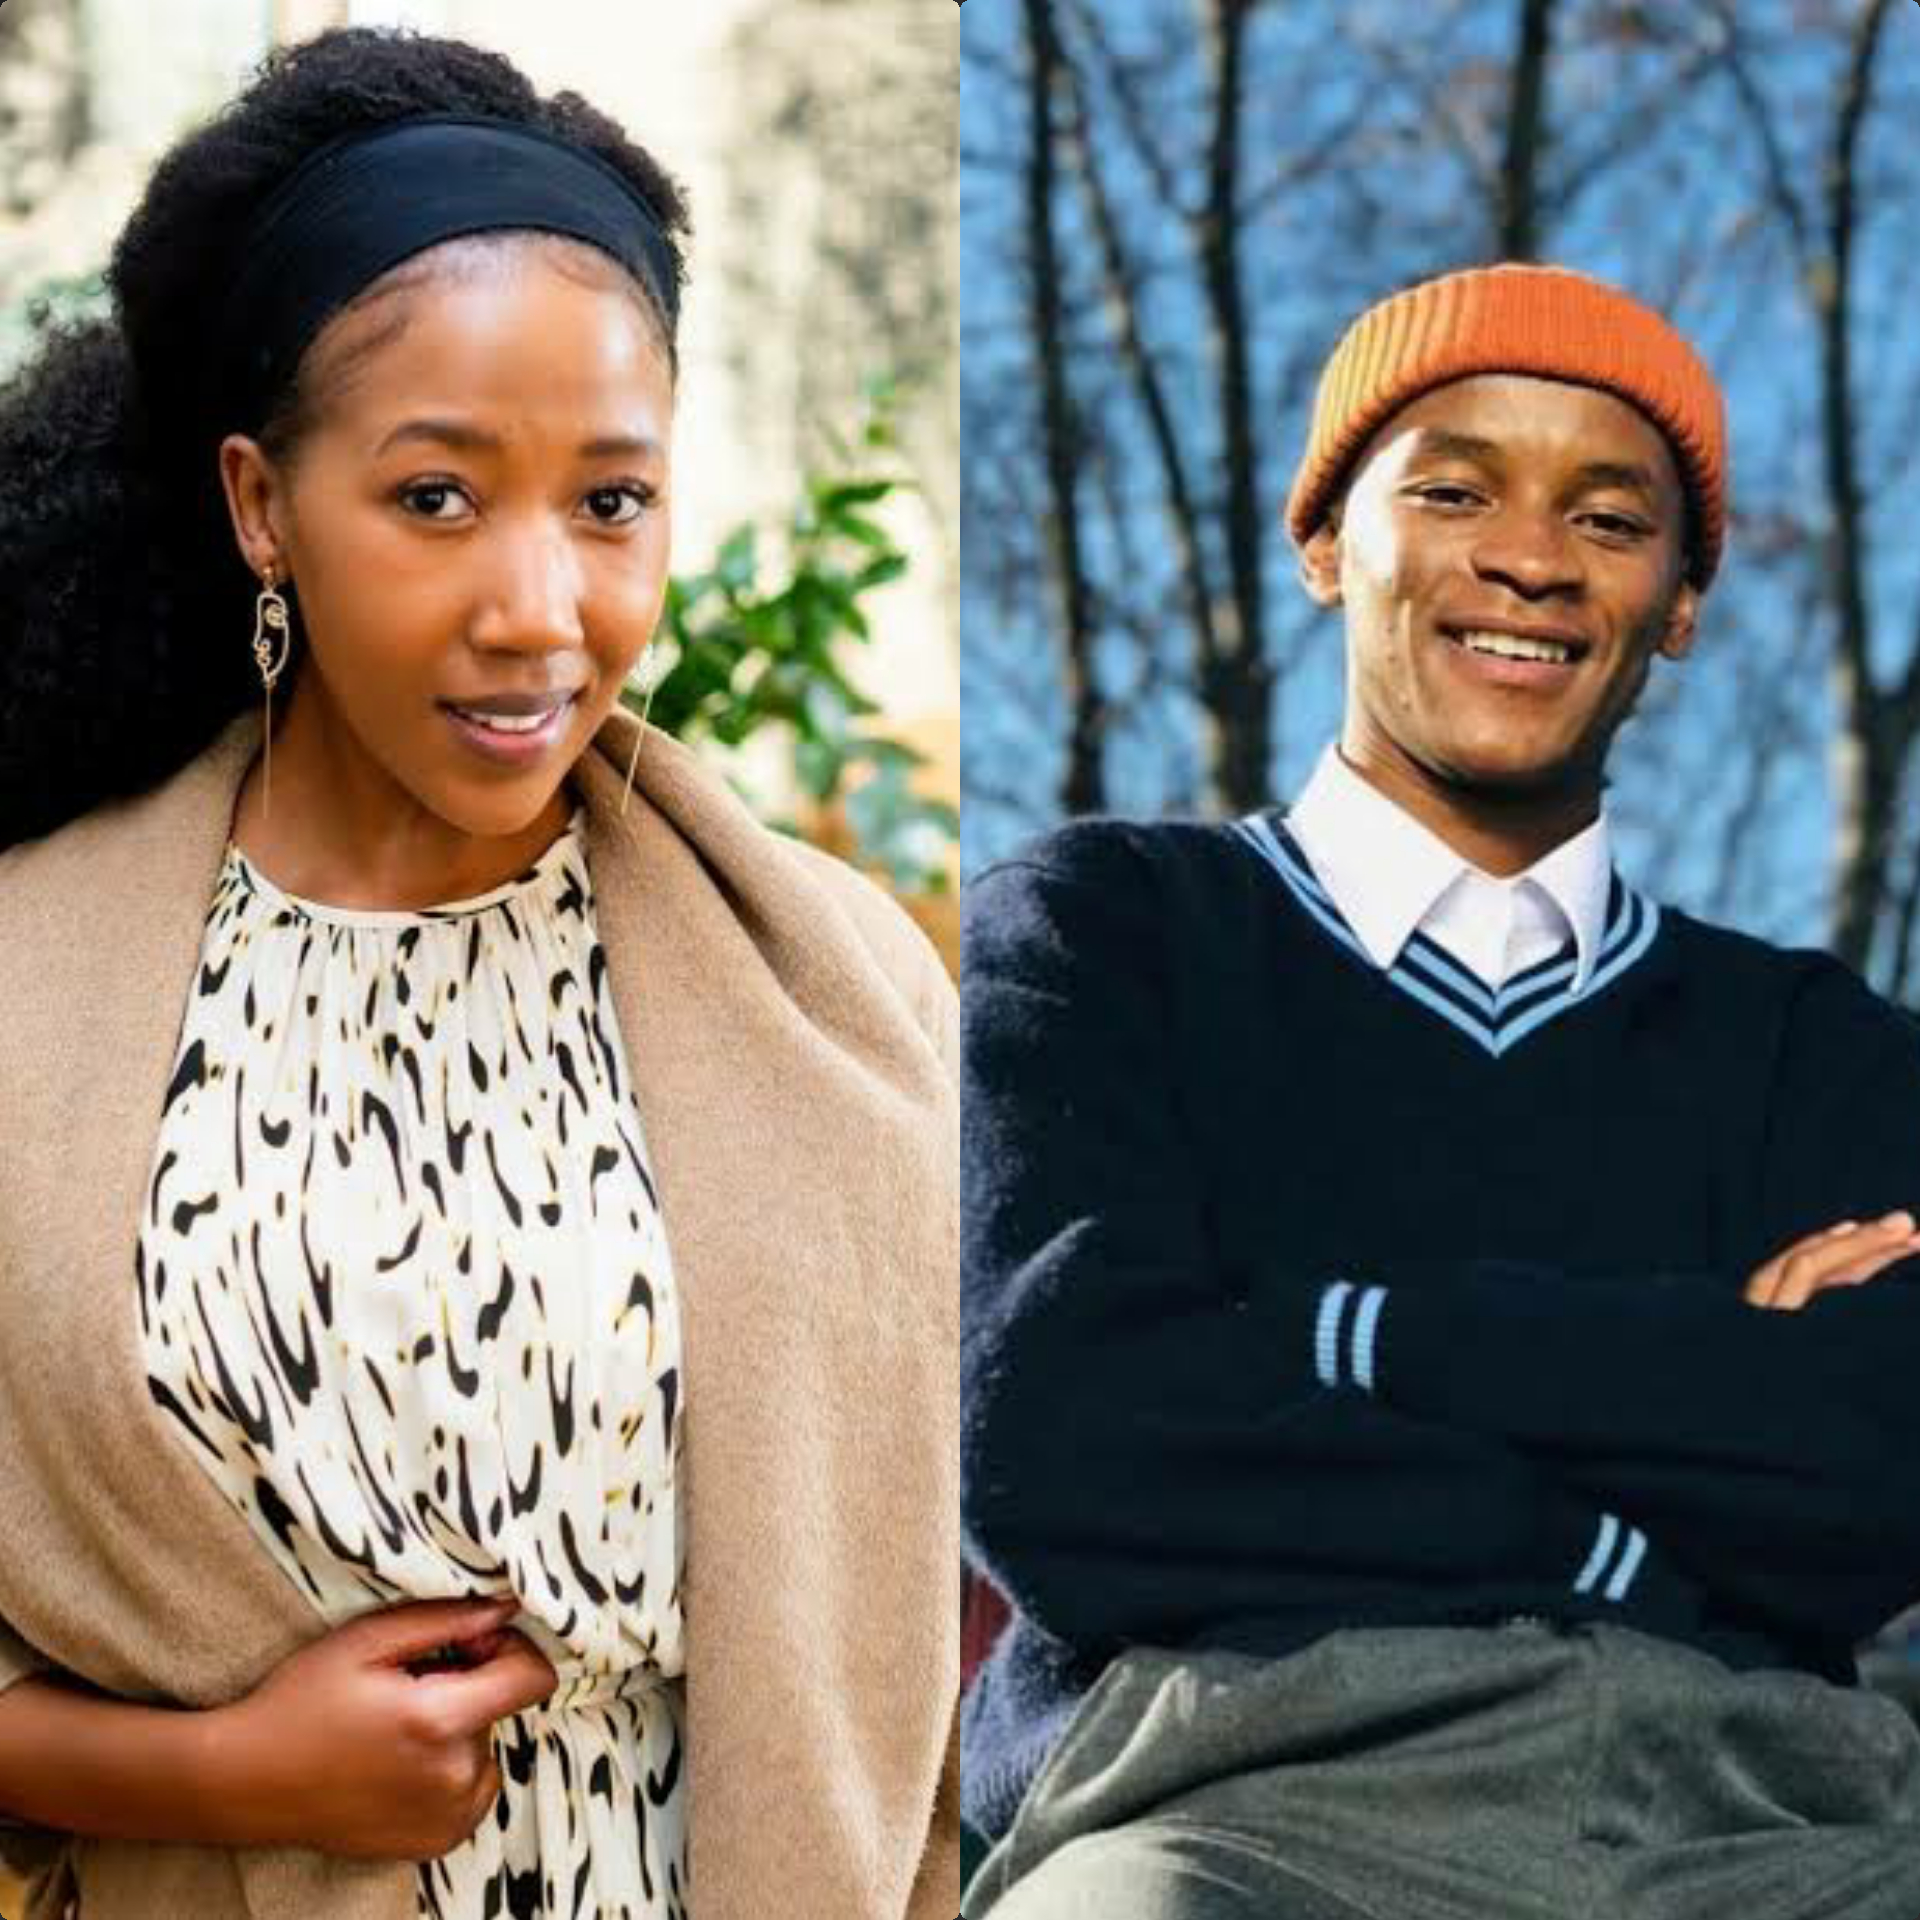 Gomora Spoiler: Teddy and Miss Manzi Relationship Gets Discovered